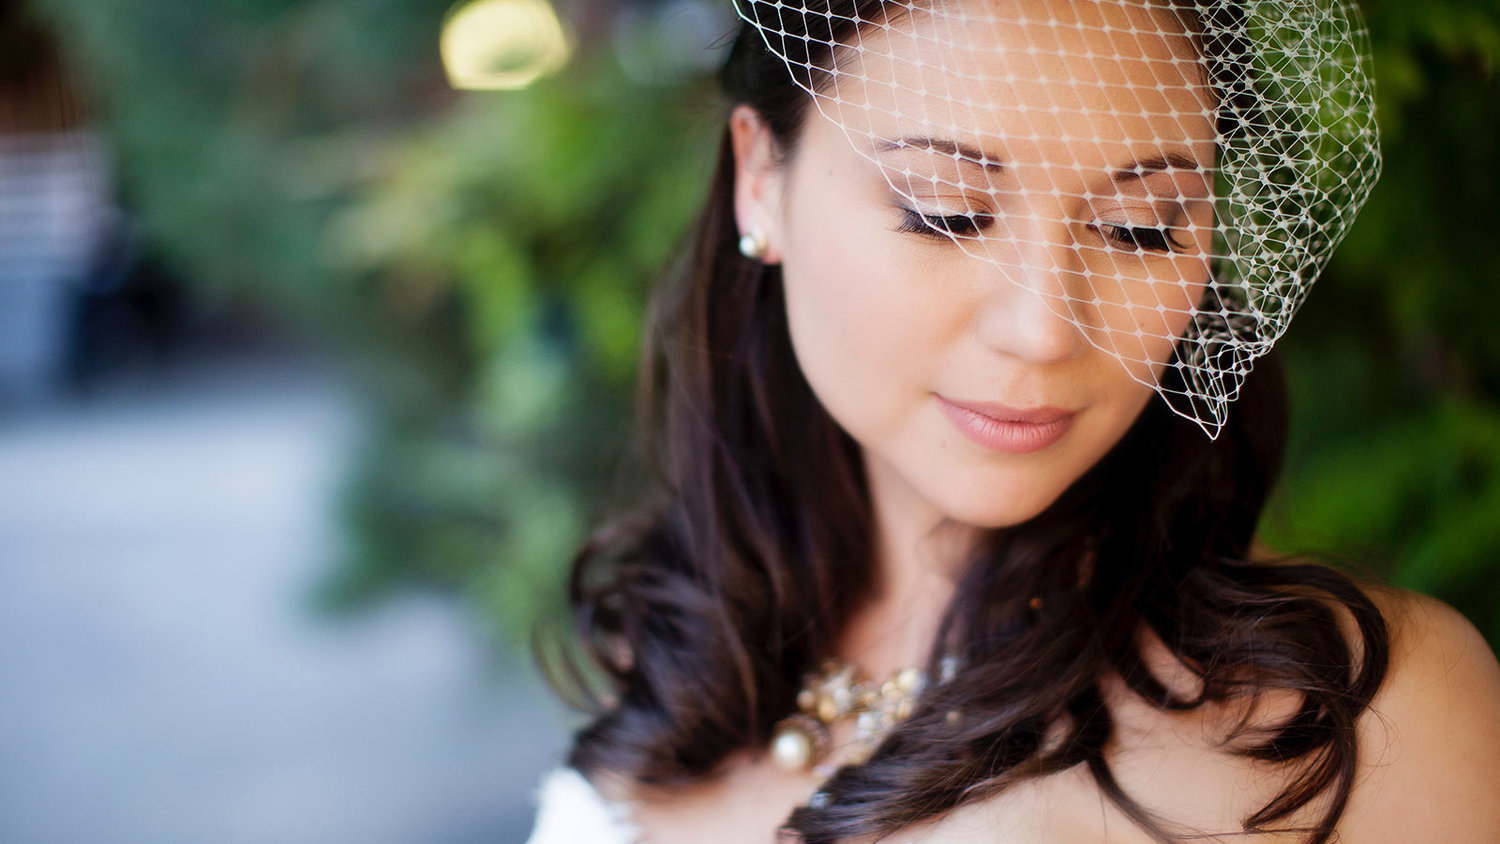 """BRIDAL WORKSHOP JULY 31ST10AM-4PM - The Bridal Makeup Workshop teaches students how to apply makeup so as to create the elegant, polished bride and wedding party. Students will also learn the """"business"""" of bridal makeup."""